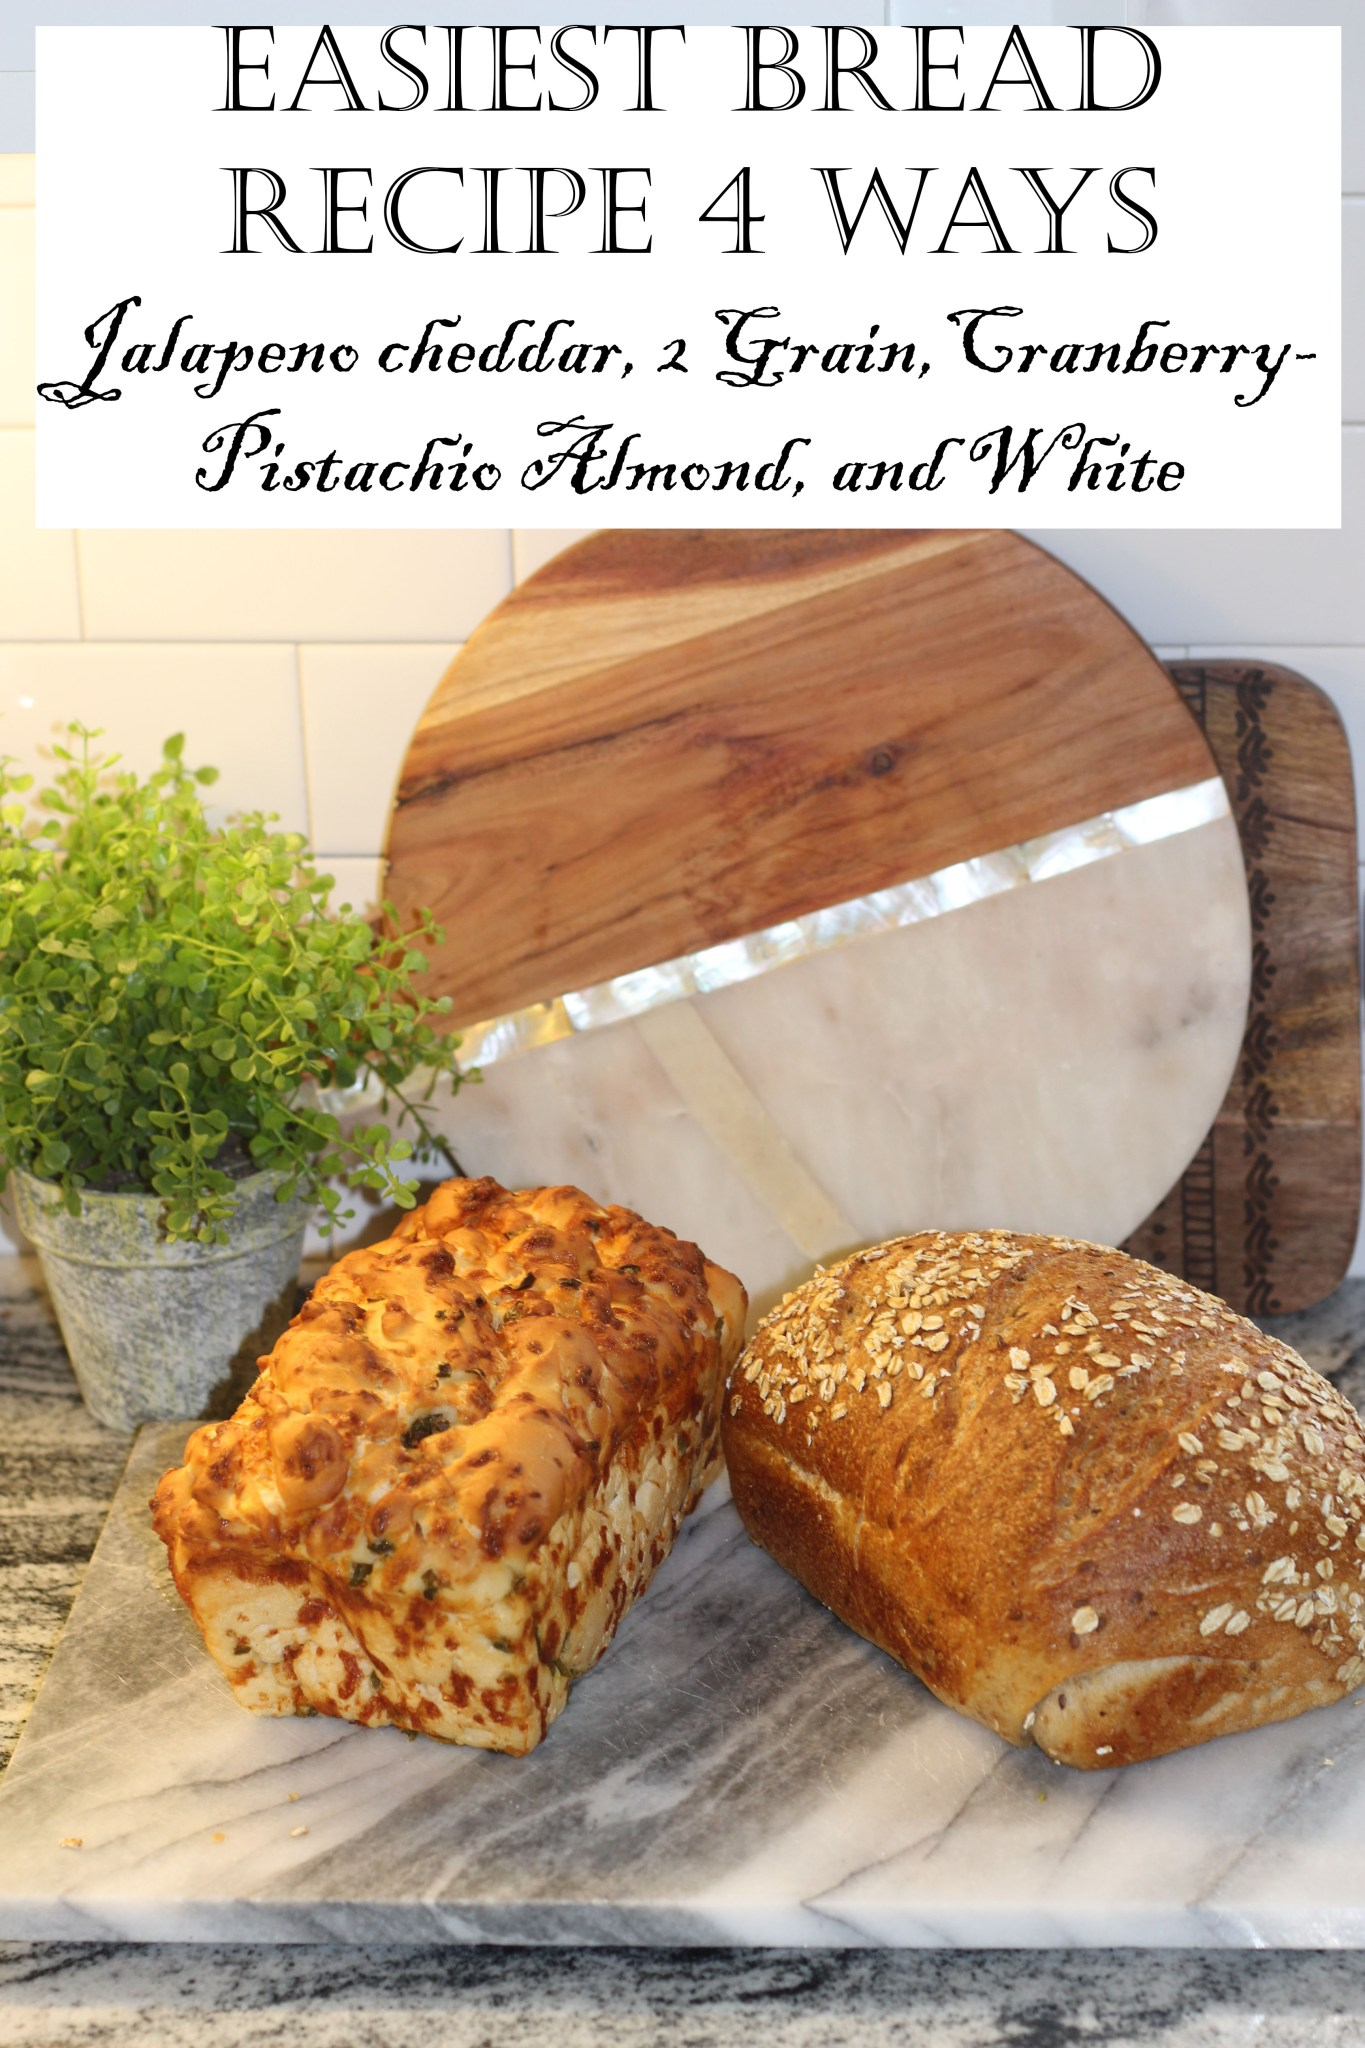 Easy Artisan Bread Recipe 4 Ways….